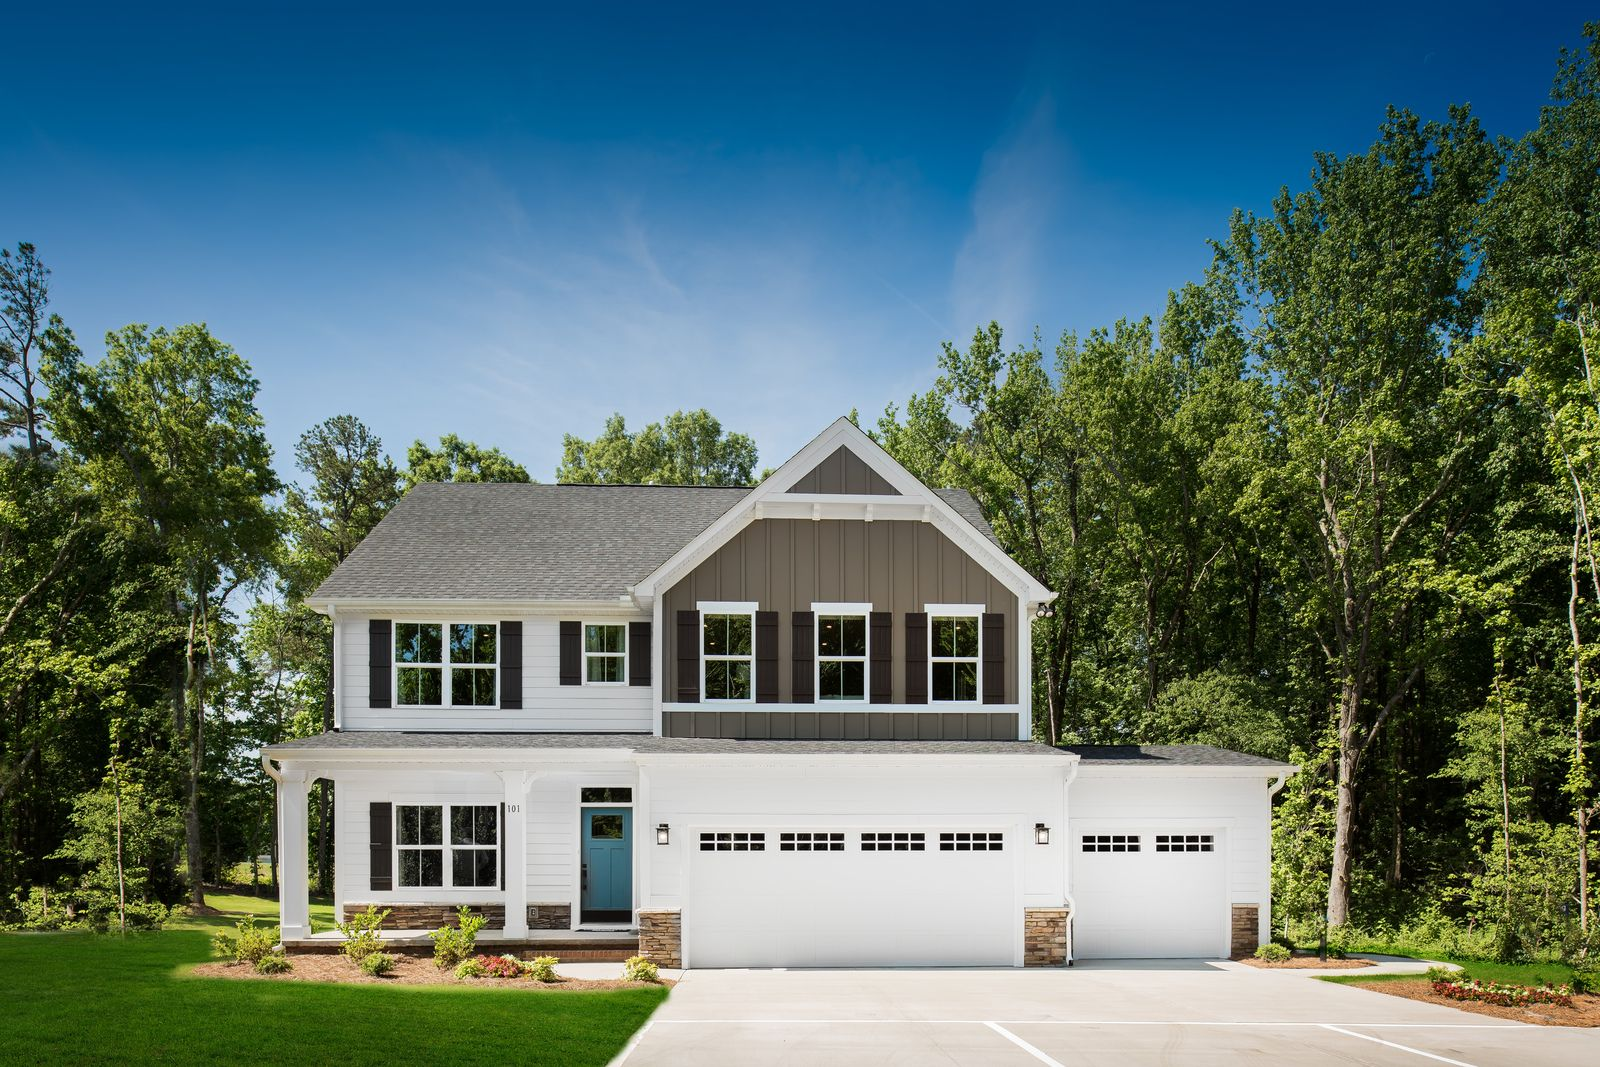 See why so many have already made Bishop Meadows their home:Only new construction 2-story homes in Perry Township with homesites up to 1/2 acre, from the mid $200s! Available 3-car garage, minutes to route 30/21. Click here to schedule your visit today!